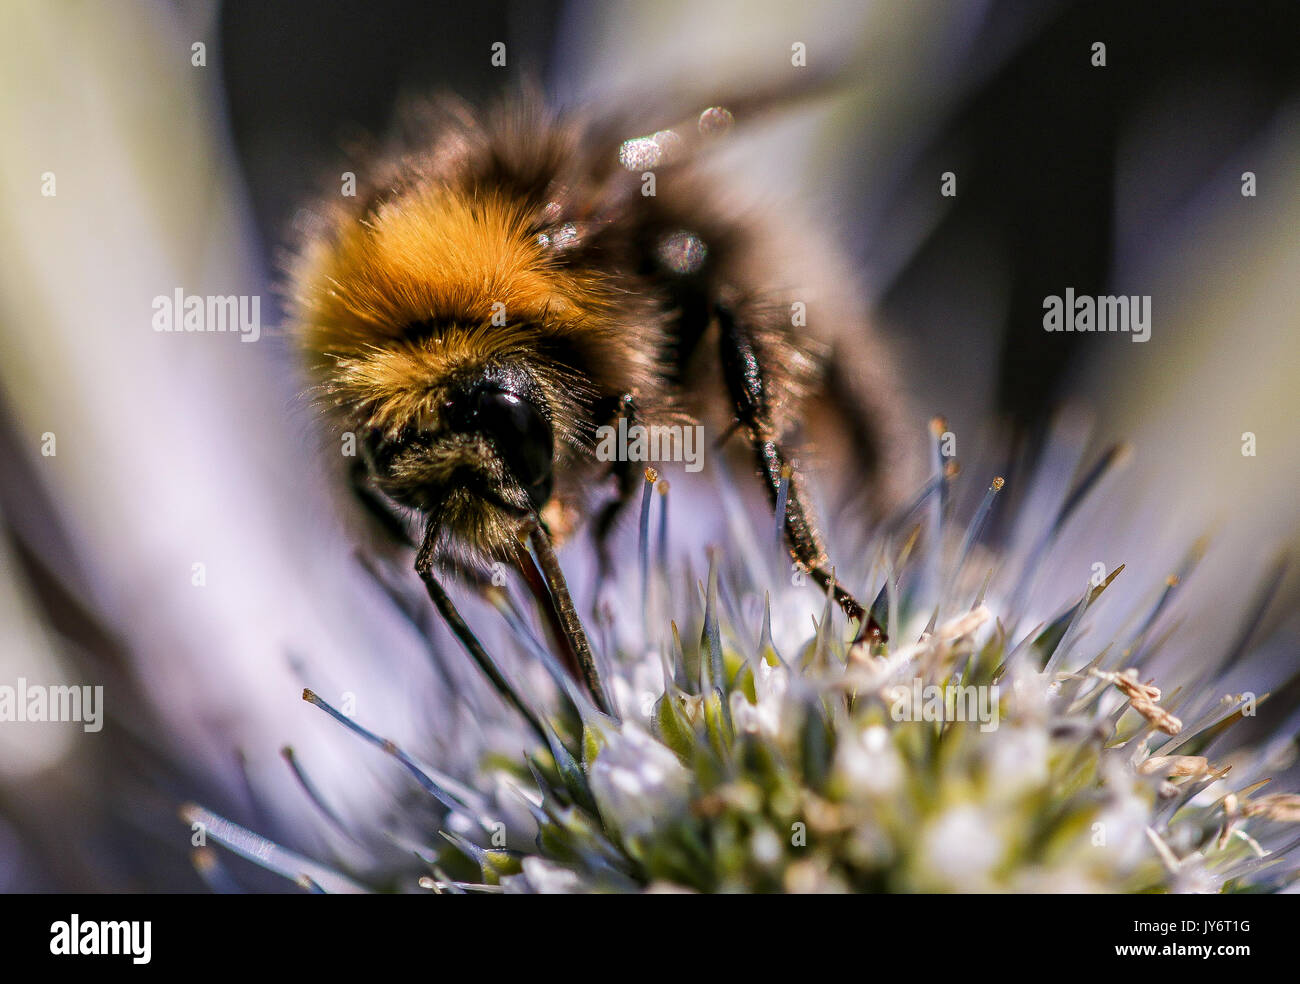 A close up of Honey Bee getting pollen from Eryngium flower head, Shepperton, Surrey, England U.K. Stock Photo